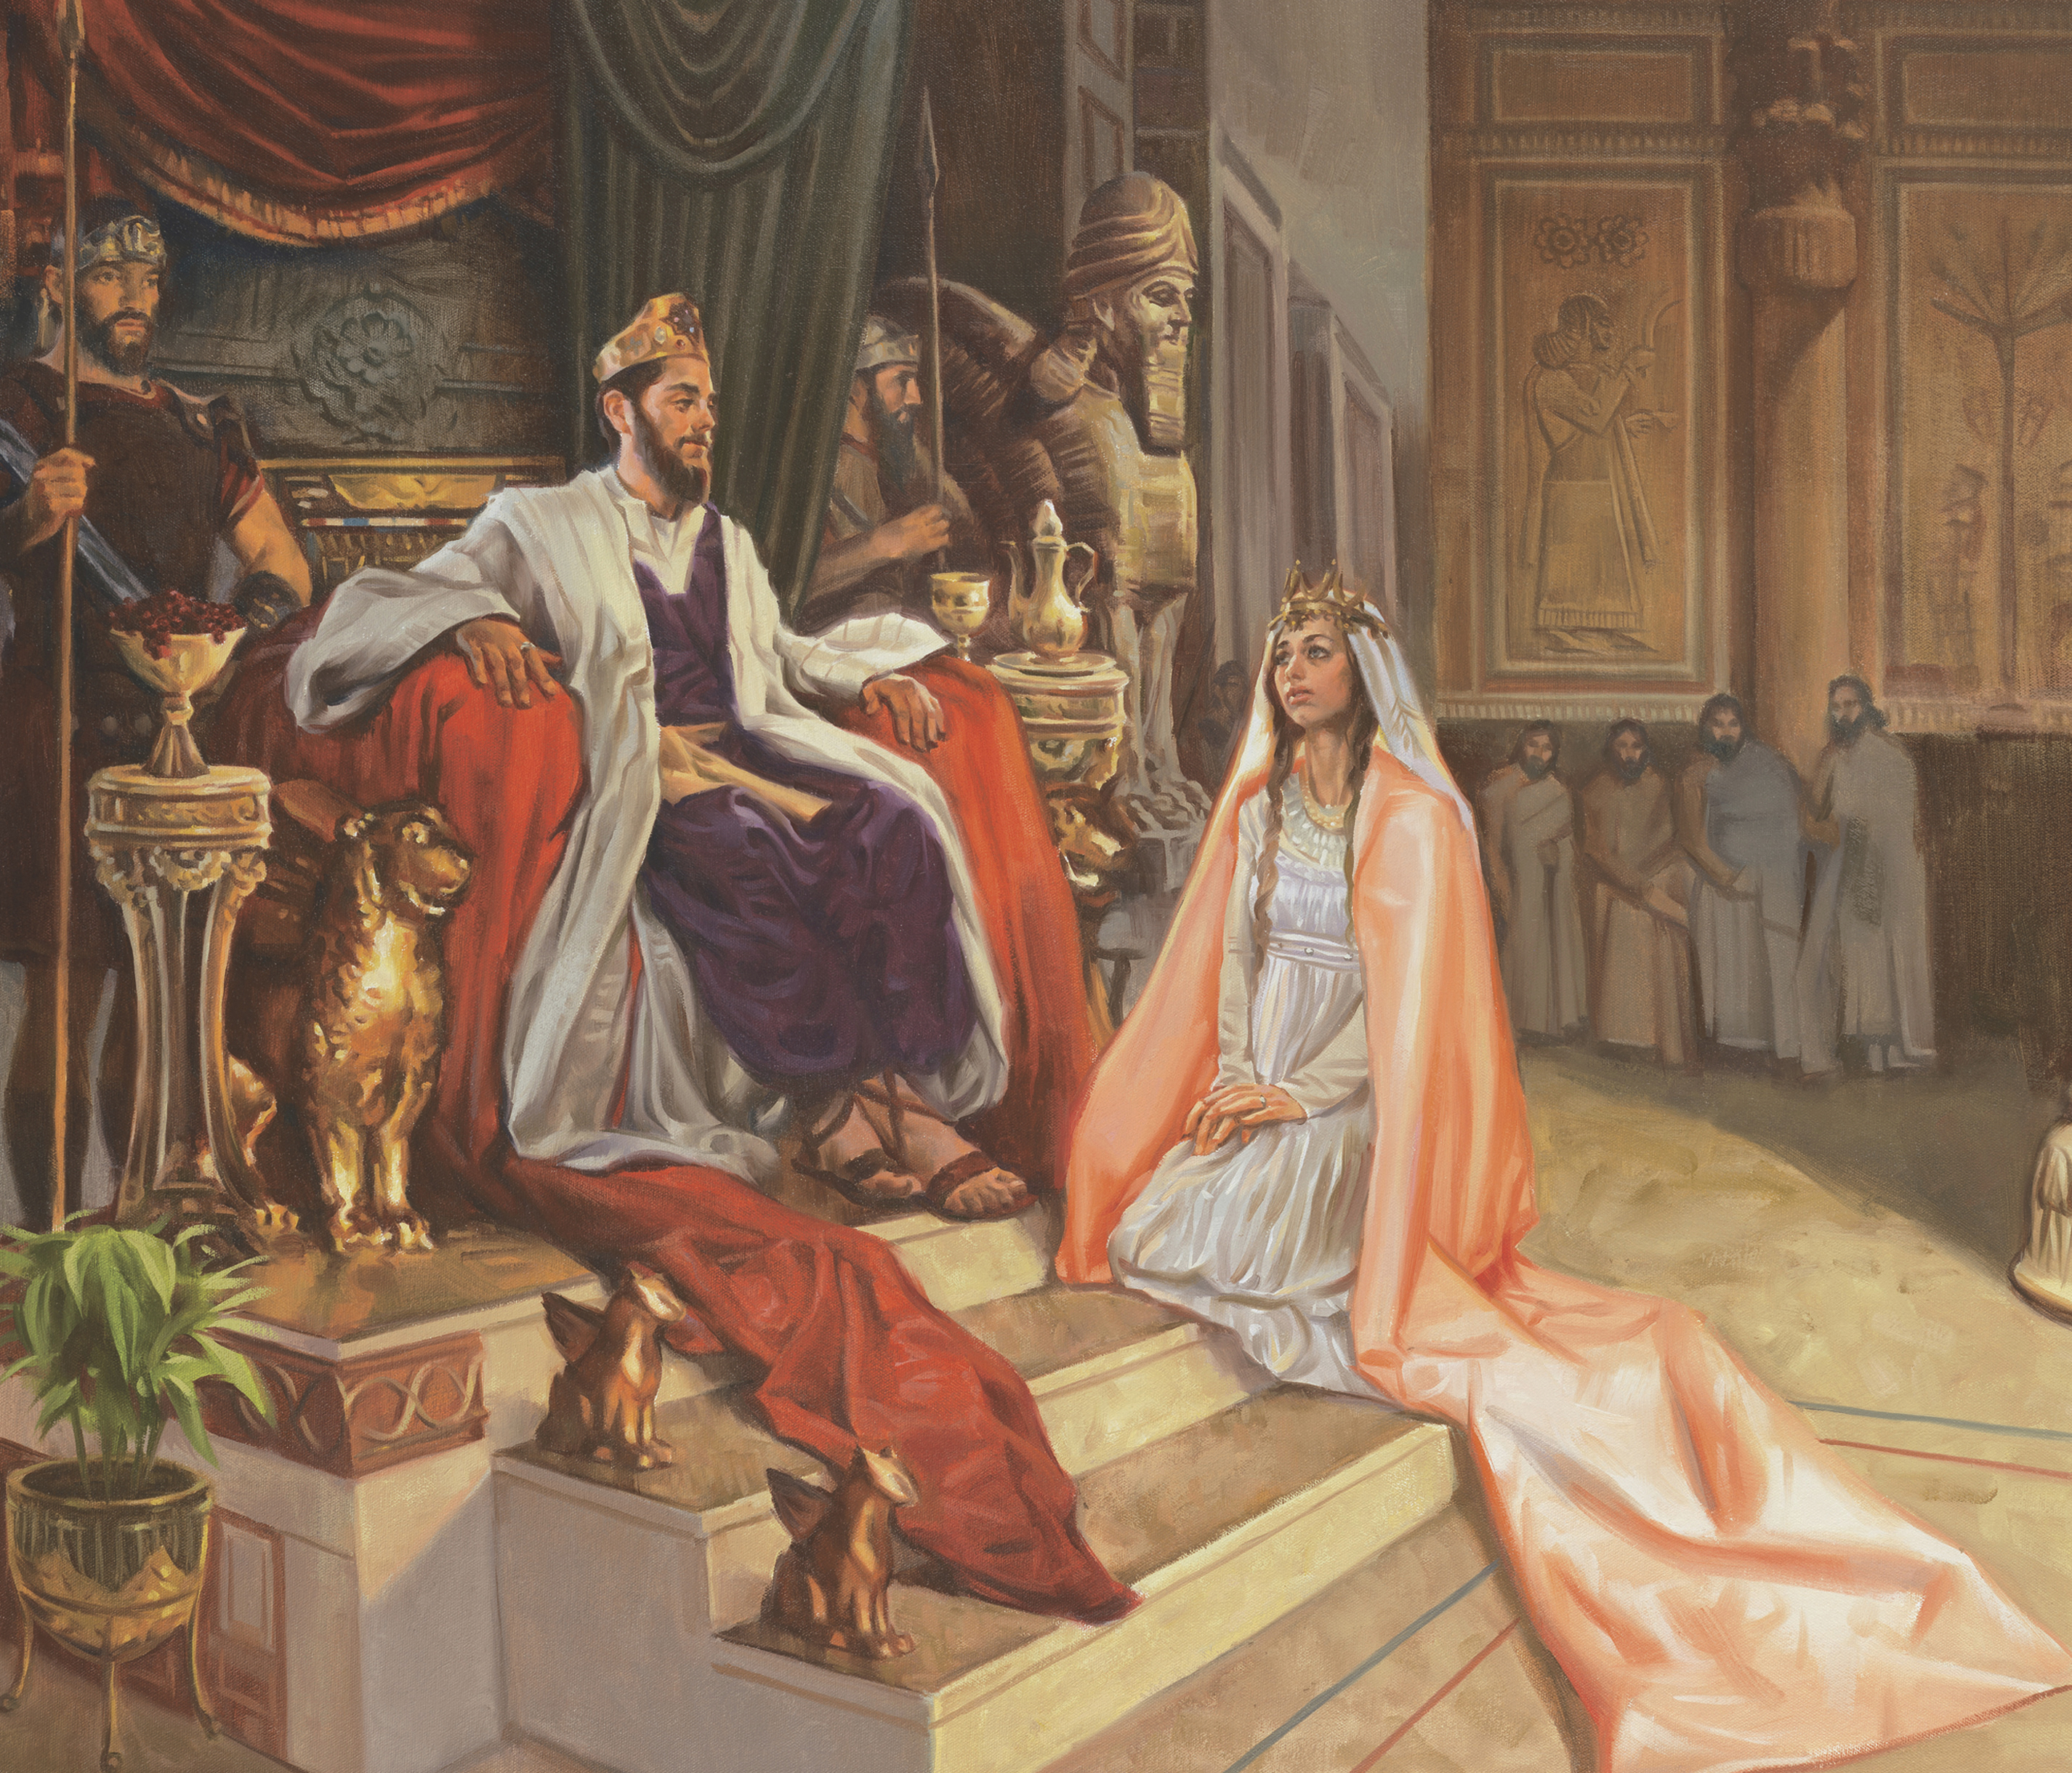 Queen Esther Saves Jehovah's People, by Sam Lawlor